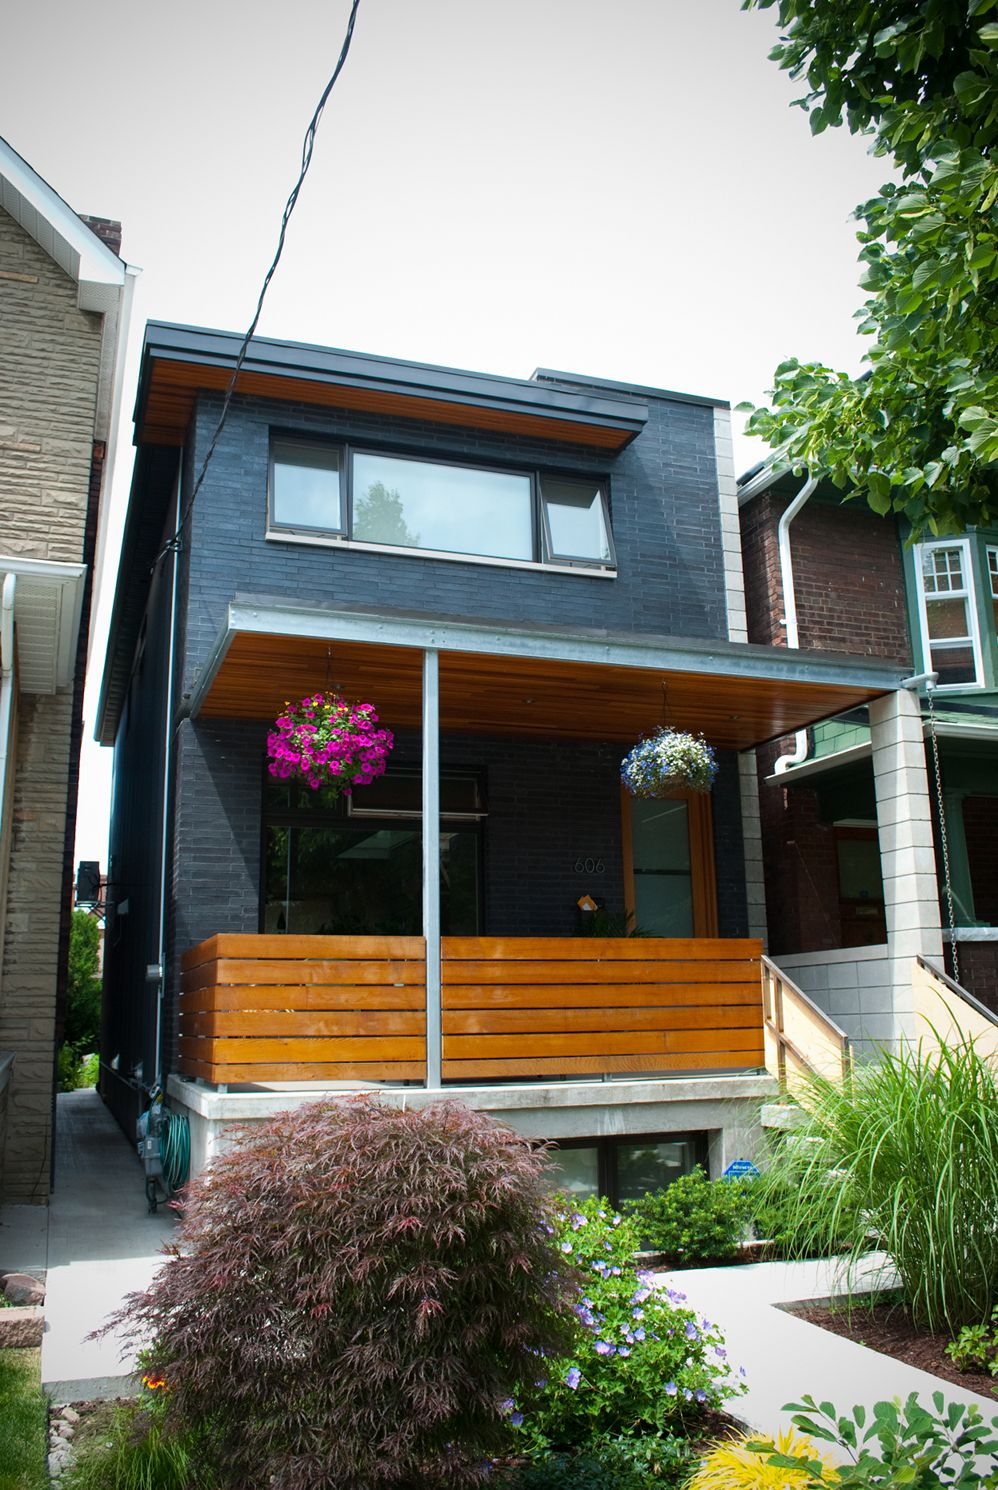 The best sustainable woods for exterior siding and decking - Modern Wood Front Porch Love The Contrast Of Wood And The Dark Exterior Modern